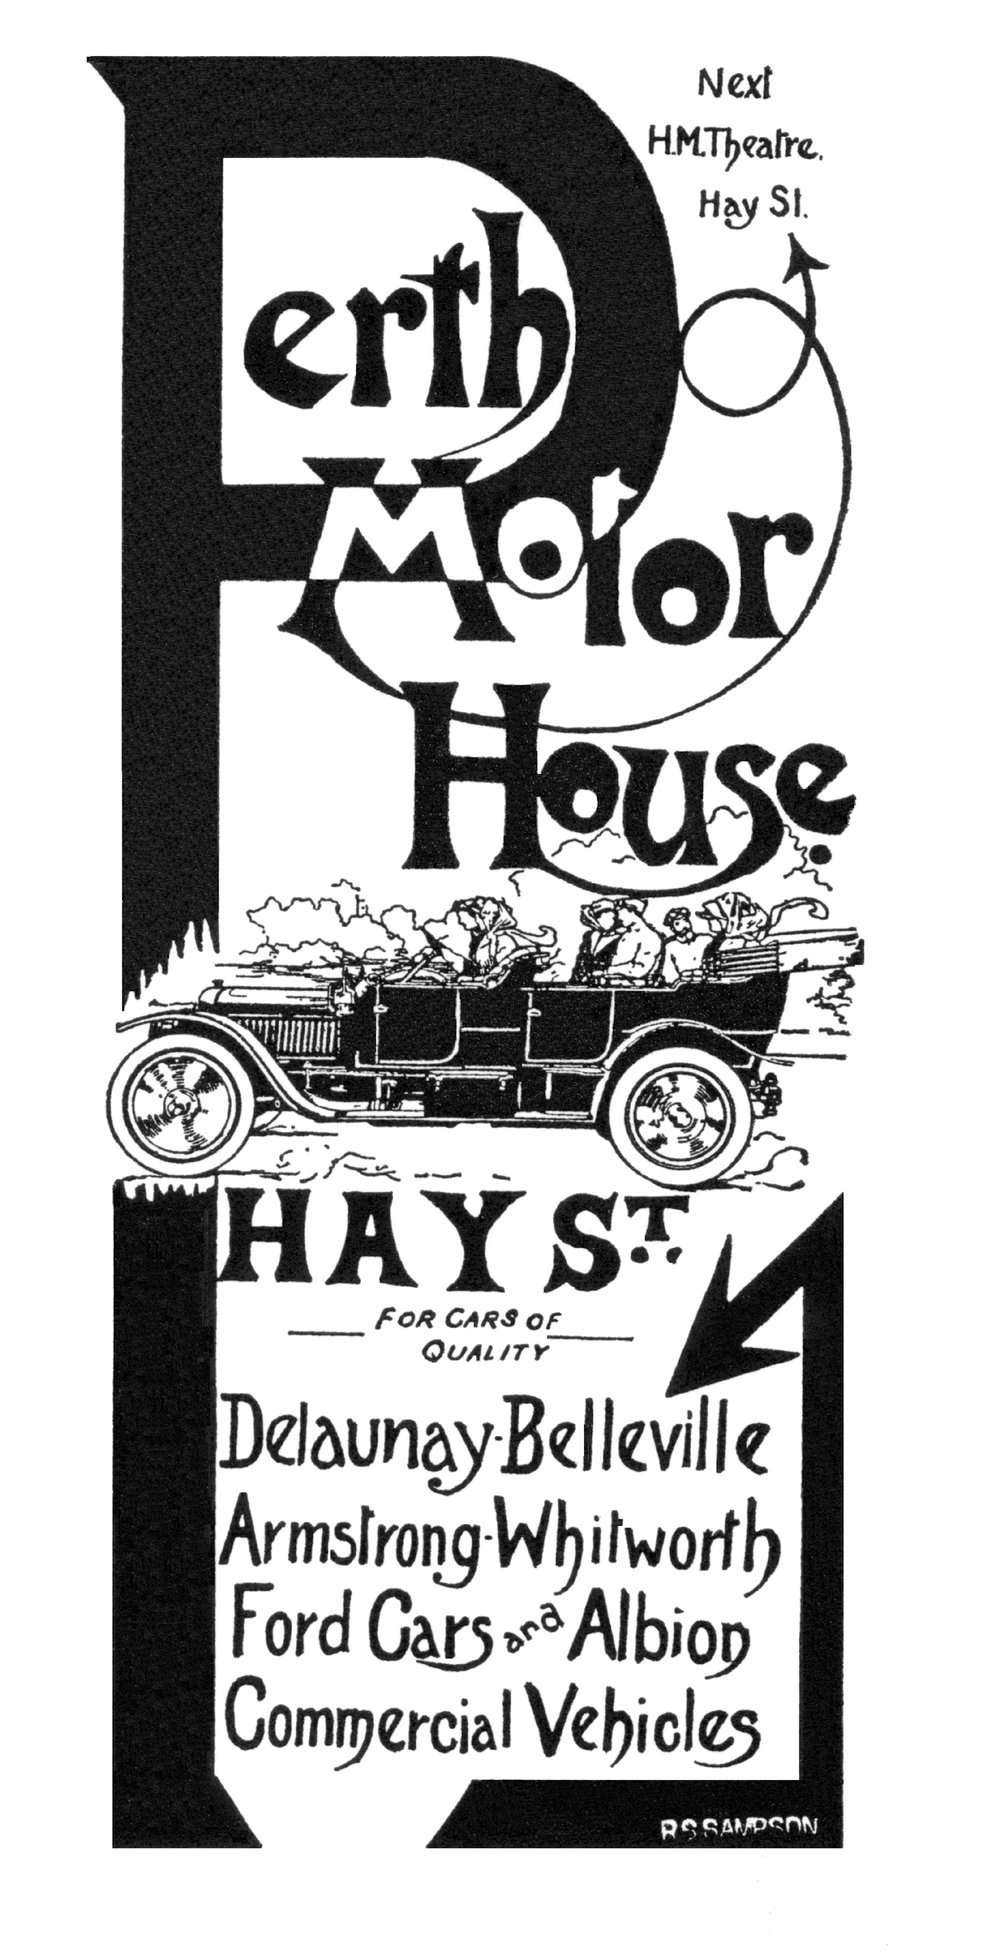 Advertisement for Winterbottom's Perth Motor House, courtesy A John Parker.